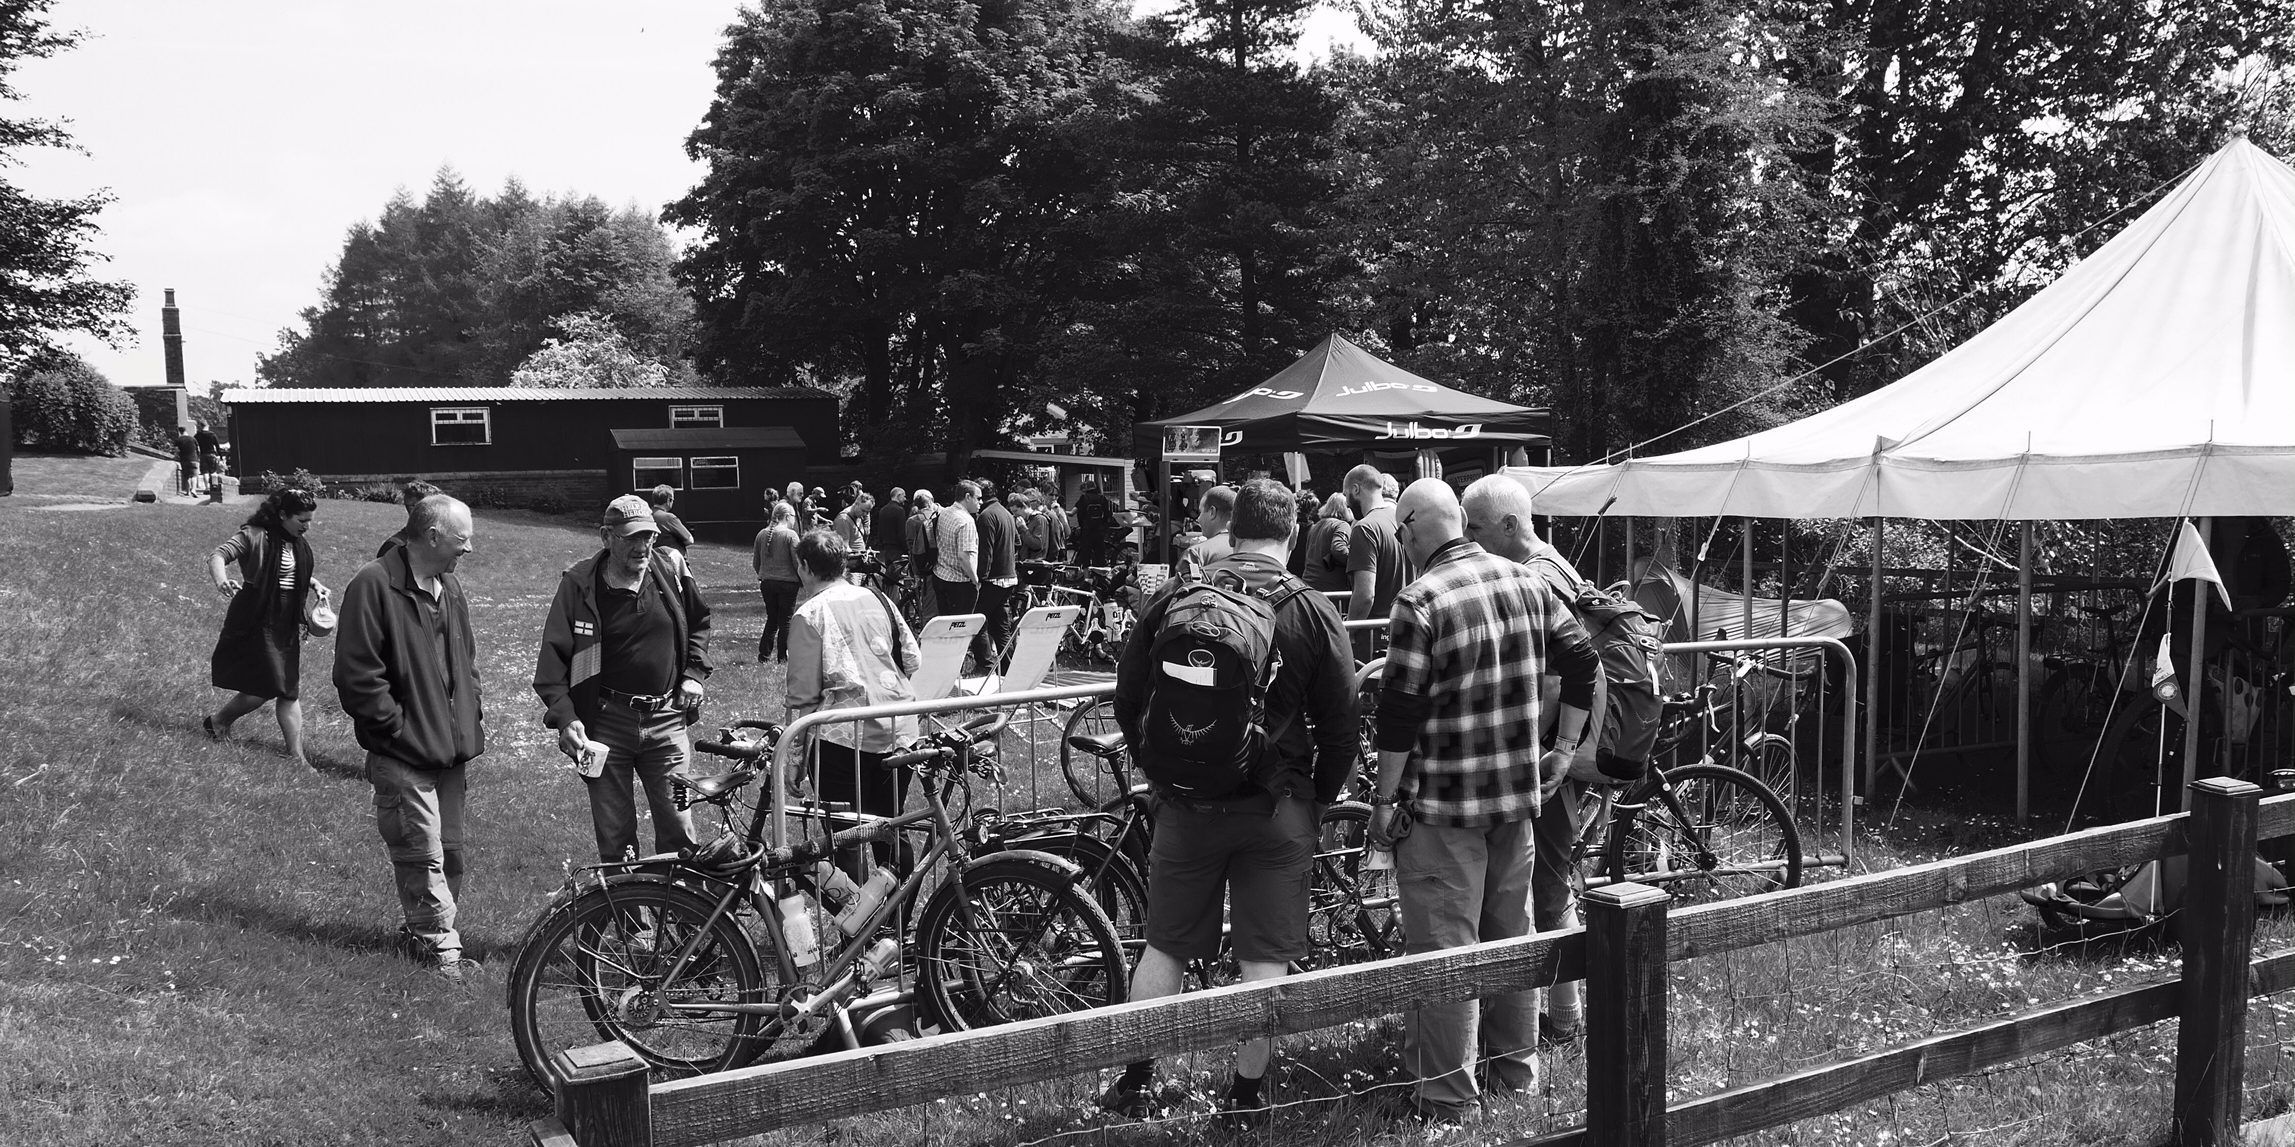 Ghyllside Cycles, Exped, Adventures Pedlars at Cycle Tour Fest